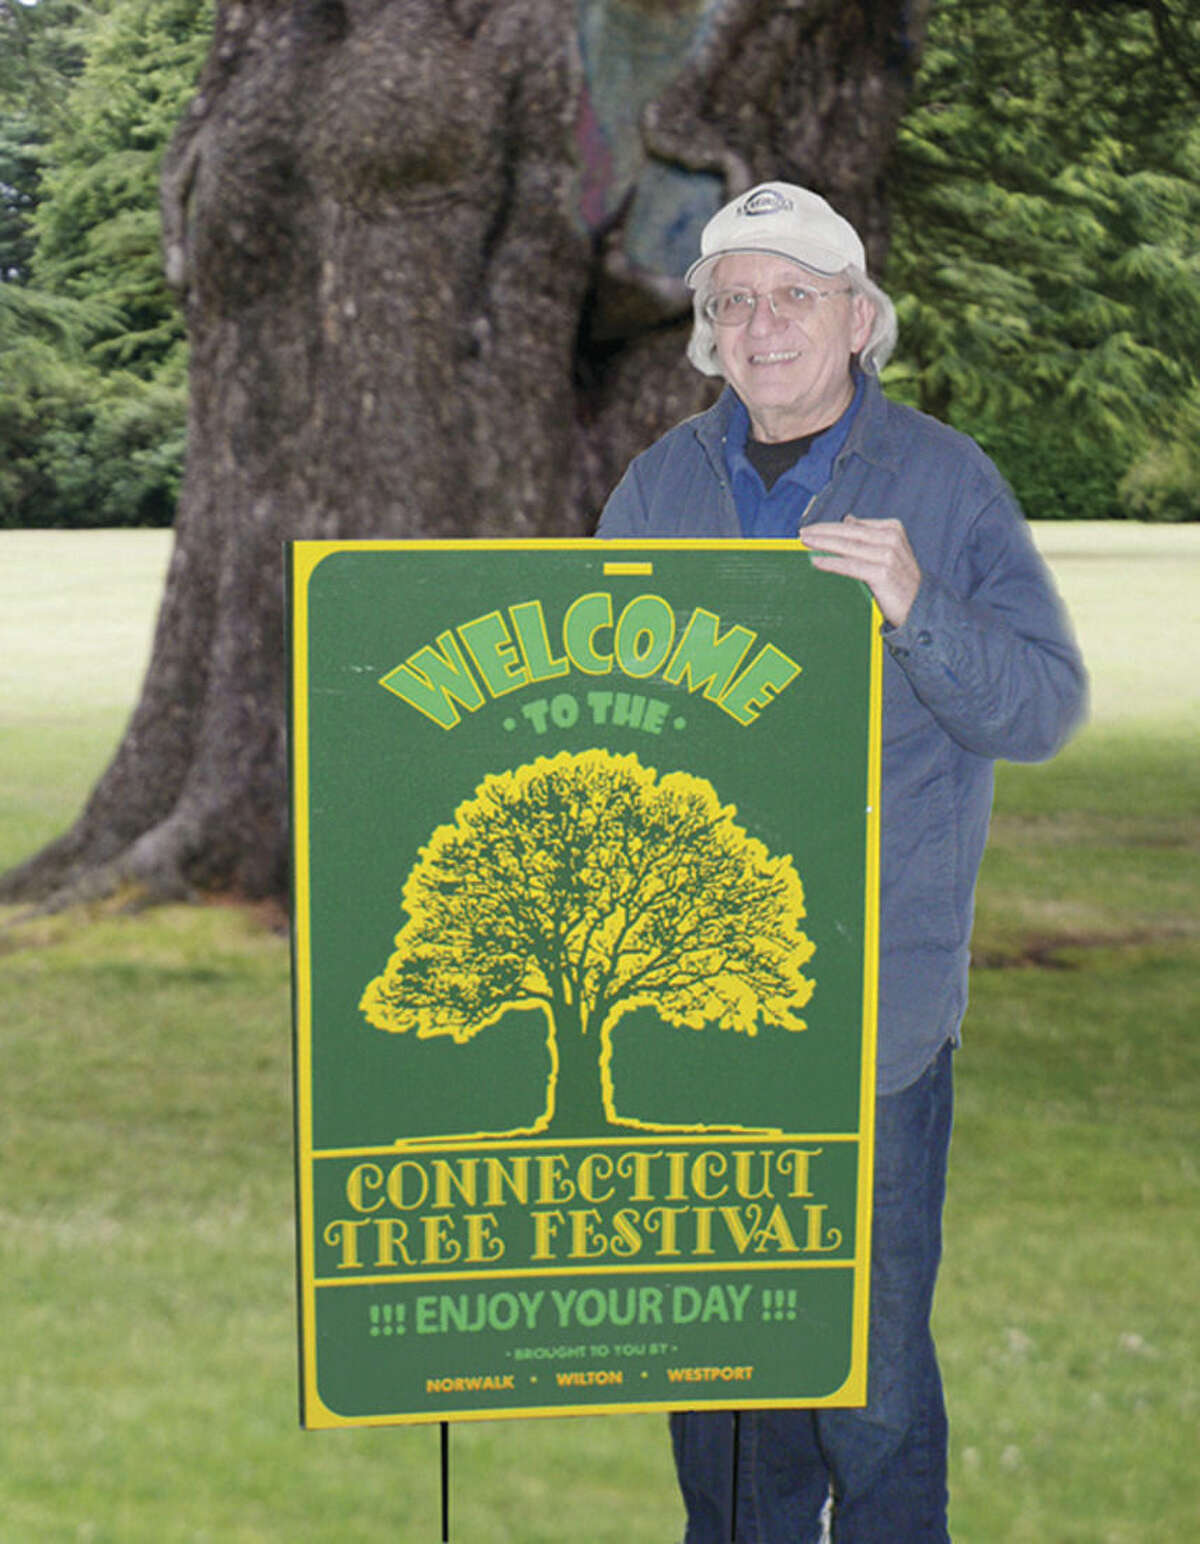 Contributed photo Ron Muller displays signage he created for the Connecticut Tree Festival.